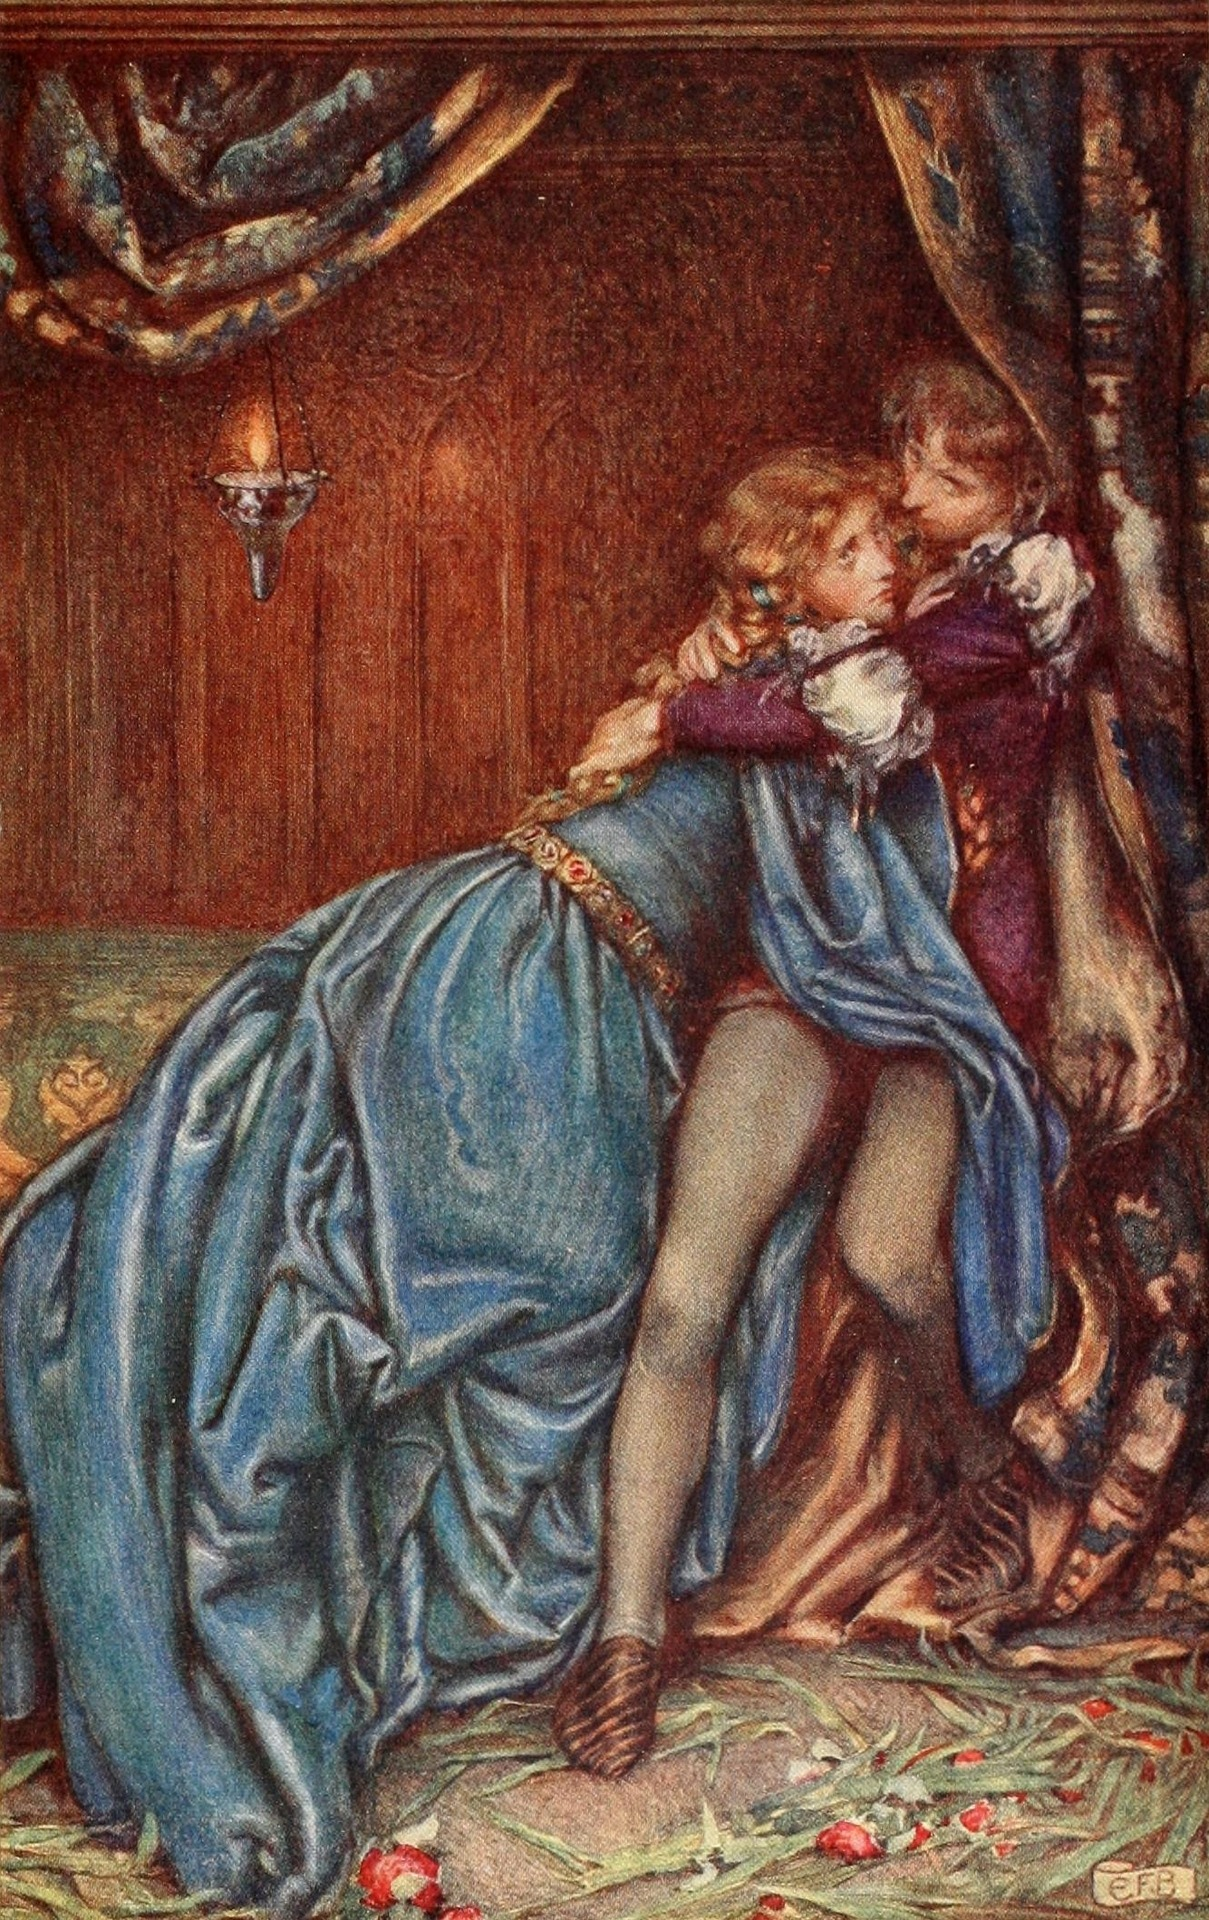 Eleanor Fortescue-Brickdale ~ Idylls of the King by Alfred Lord Tennyson ~ 1913 ~ via Illustration for Guinevere It was their last hour, a madness of farewells.